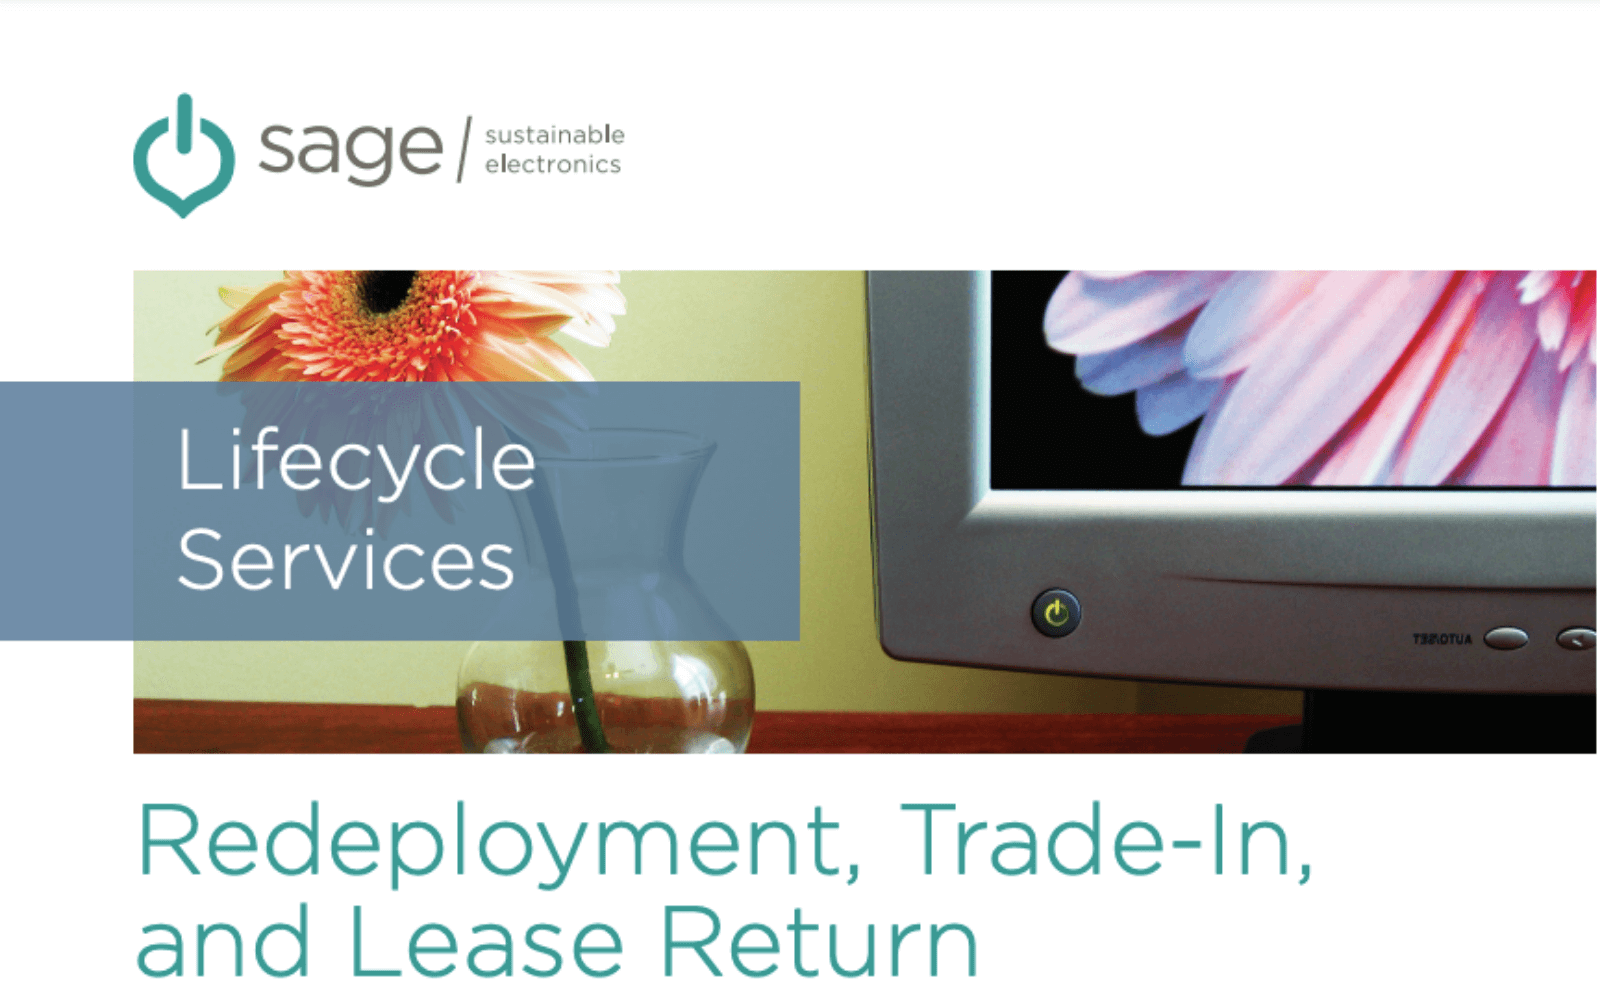 redeployment _ sage sustainable electronics